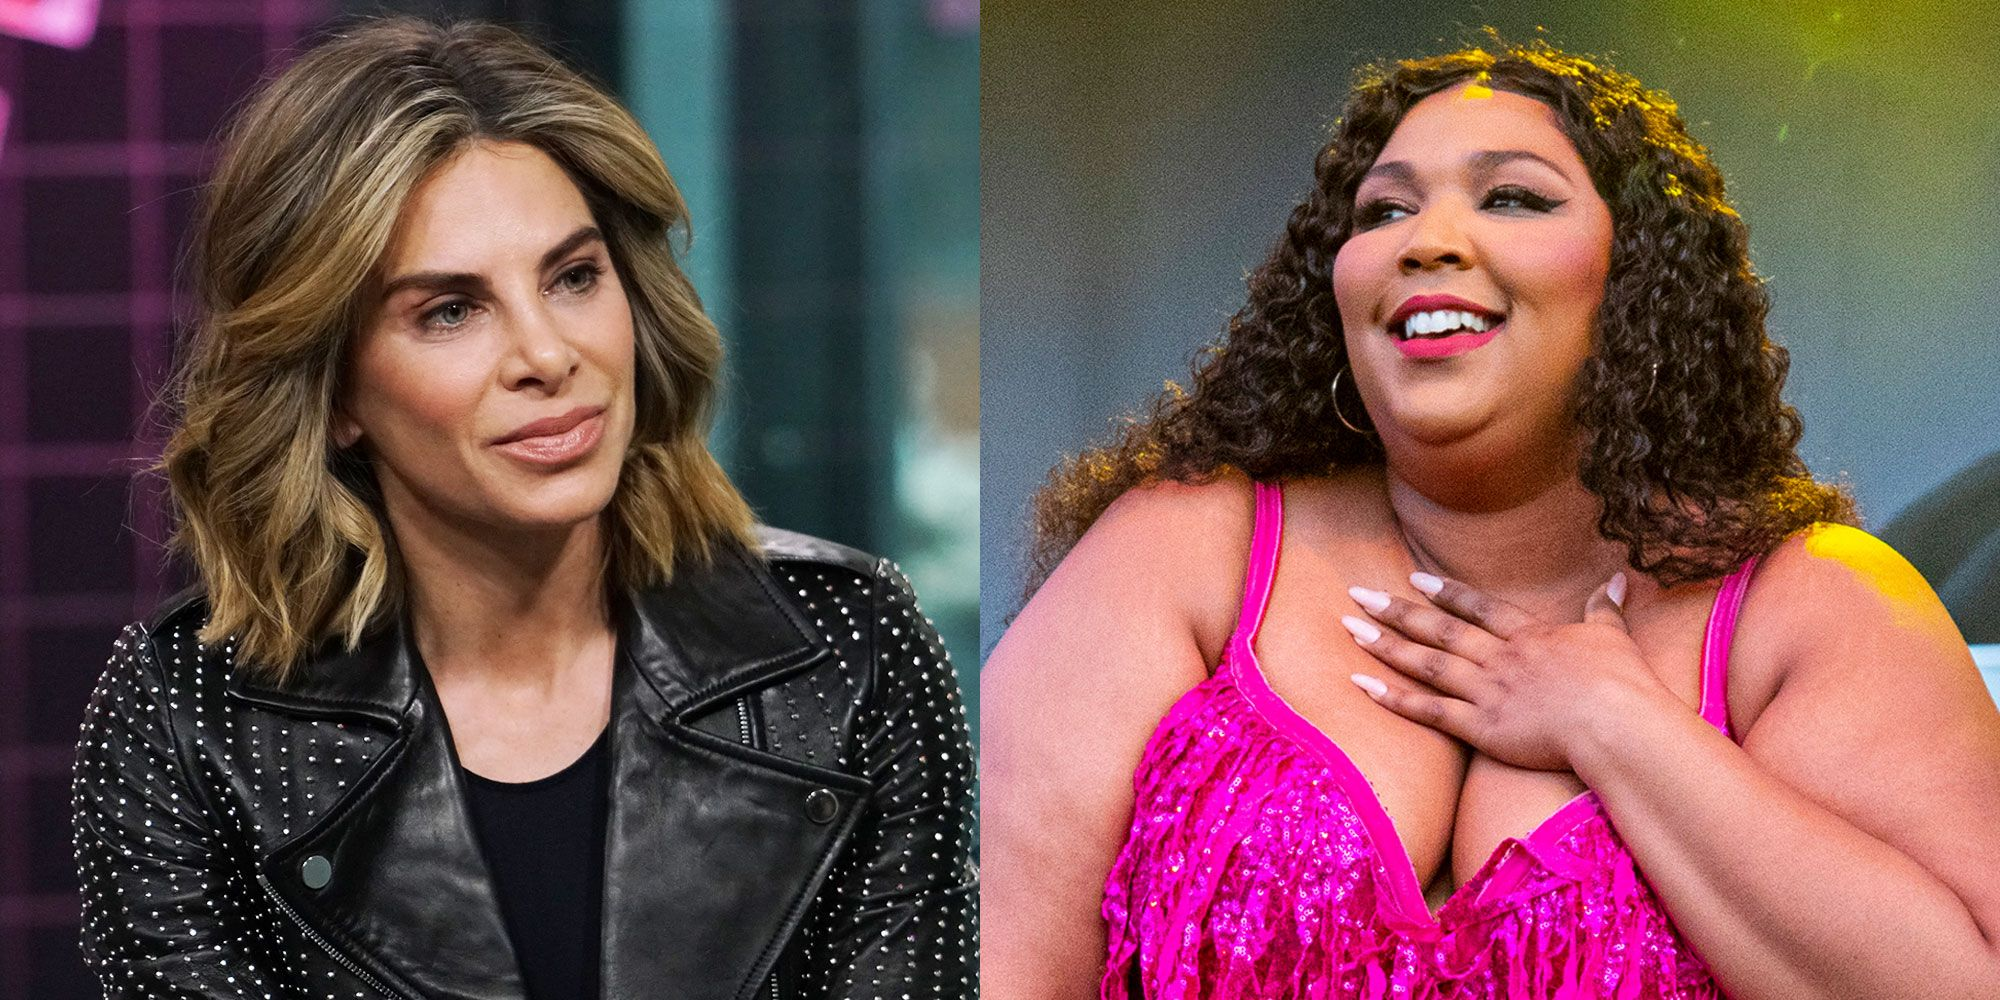 Jillian Michaels' Comments About Lizzo's Weight Triggered Major Backlash on Twitter